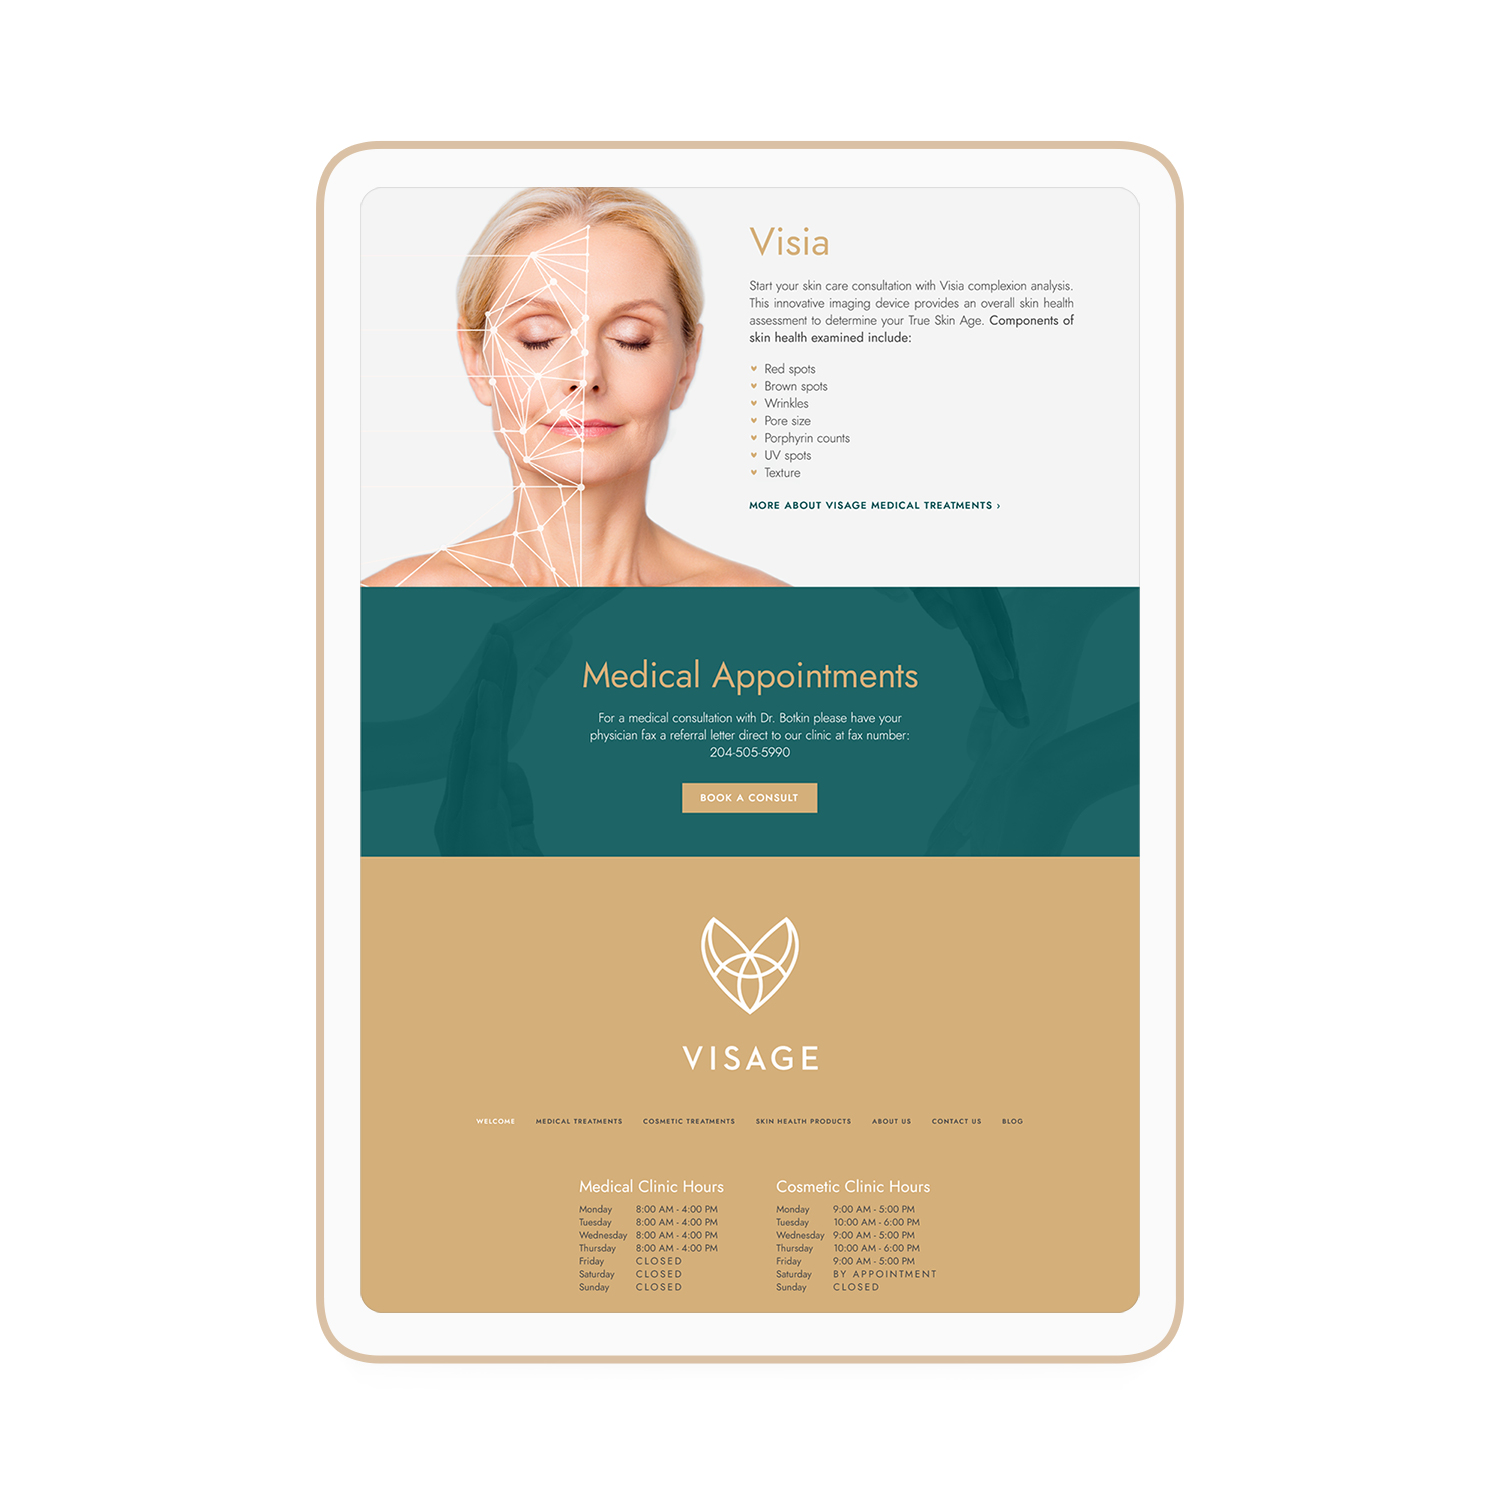 Visage Dermatology Winnipeg Feminist Brands Website Design Feminist Entrepreneurs iPad